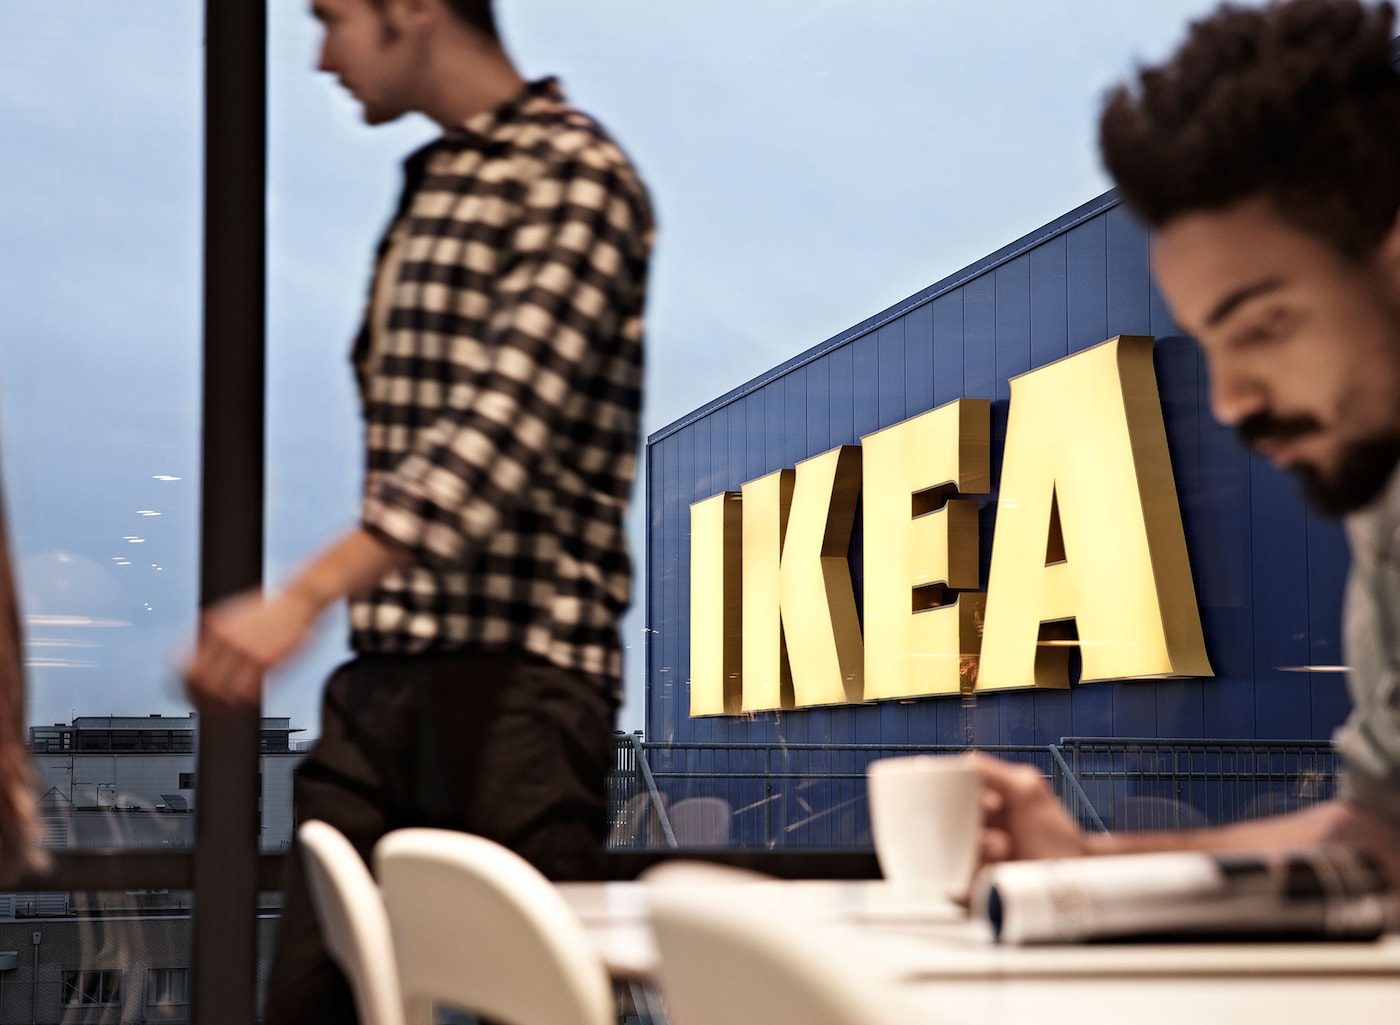 A man holding a mug of coffee with another man walking by, in front of the IKEA logo on a blue store.